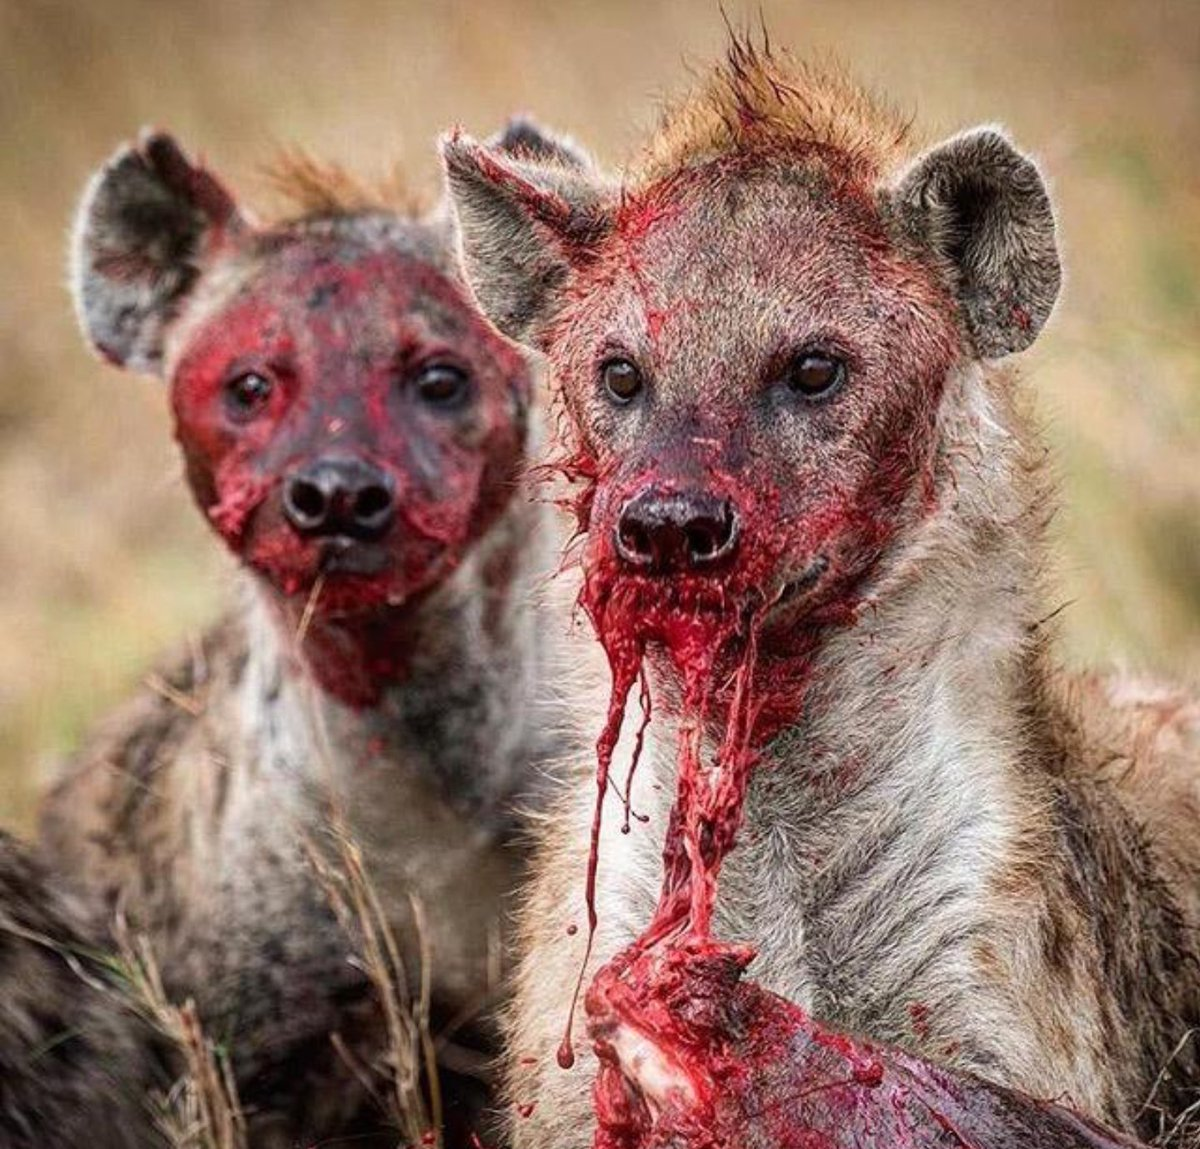 RT @5ft23inches: Current Mood: 🍽🏀🧐  HUNT or Be HUNTED...  #GameDay #CIFPlayoffs #PostSeason #SecureTheBag https://t.co/iGbGxQjqj2